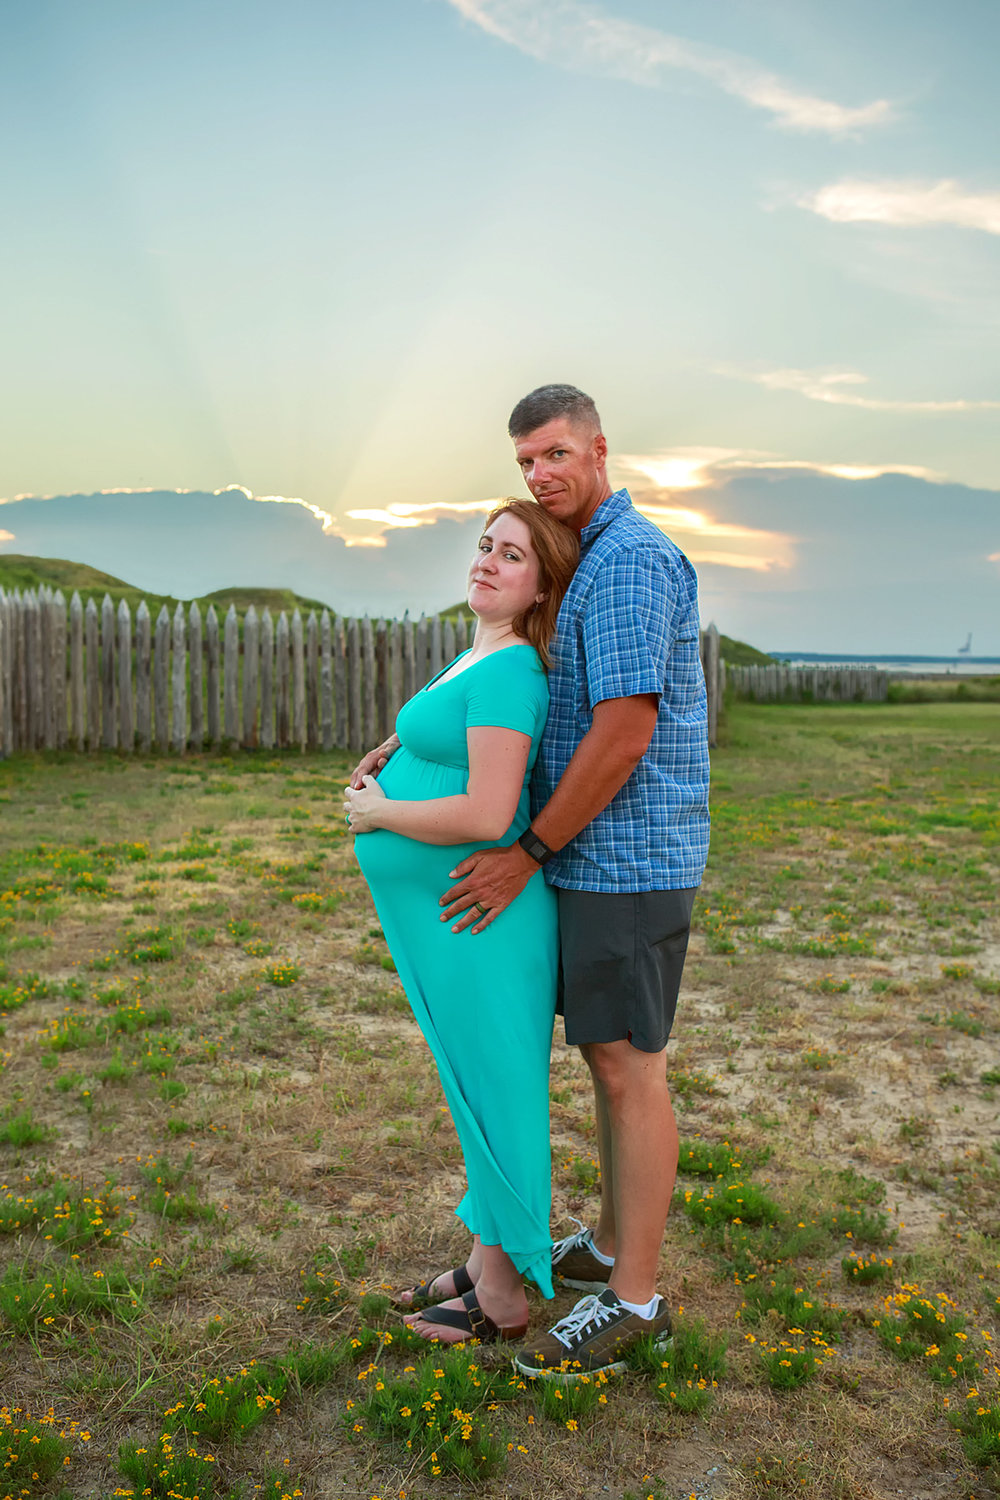 Fort_Fisher_Maternity_Photographer_Tiffany_Abruzzo_17.jpg